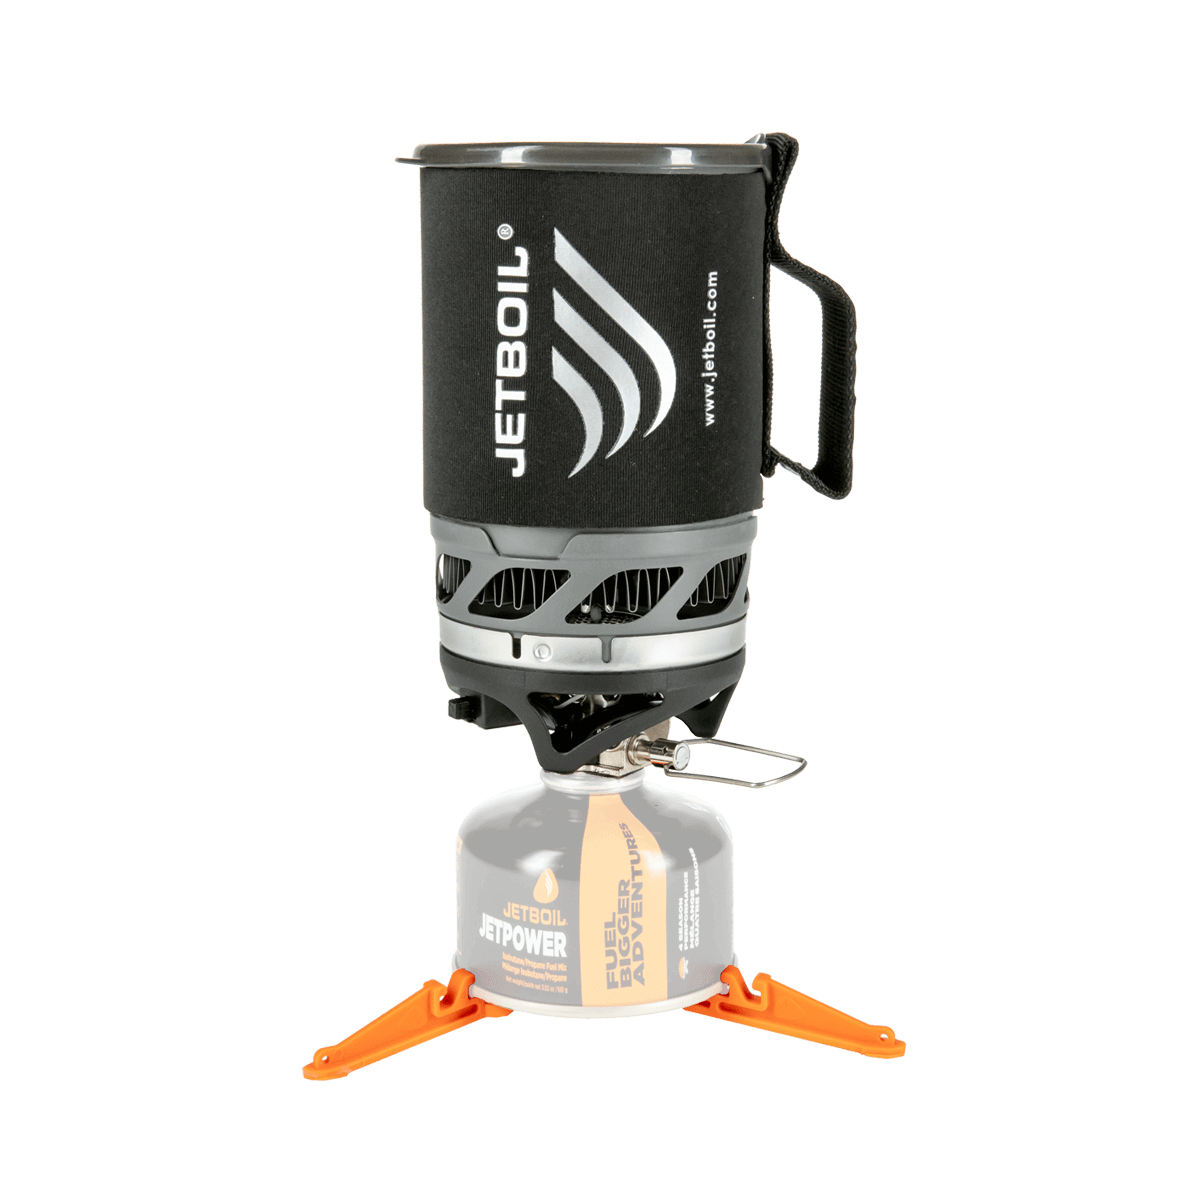 Jetboil MicroMo Carbon on stove